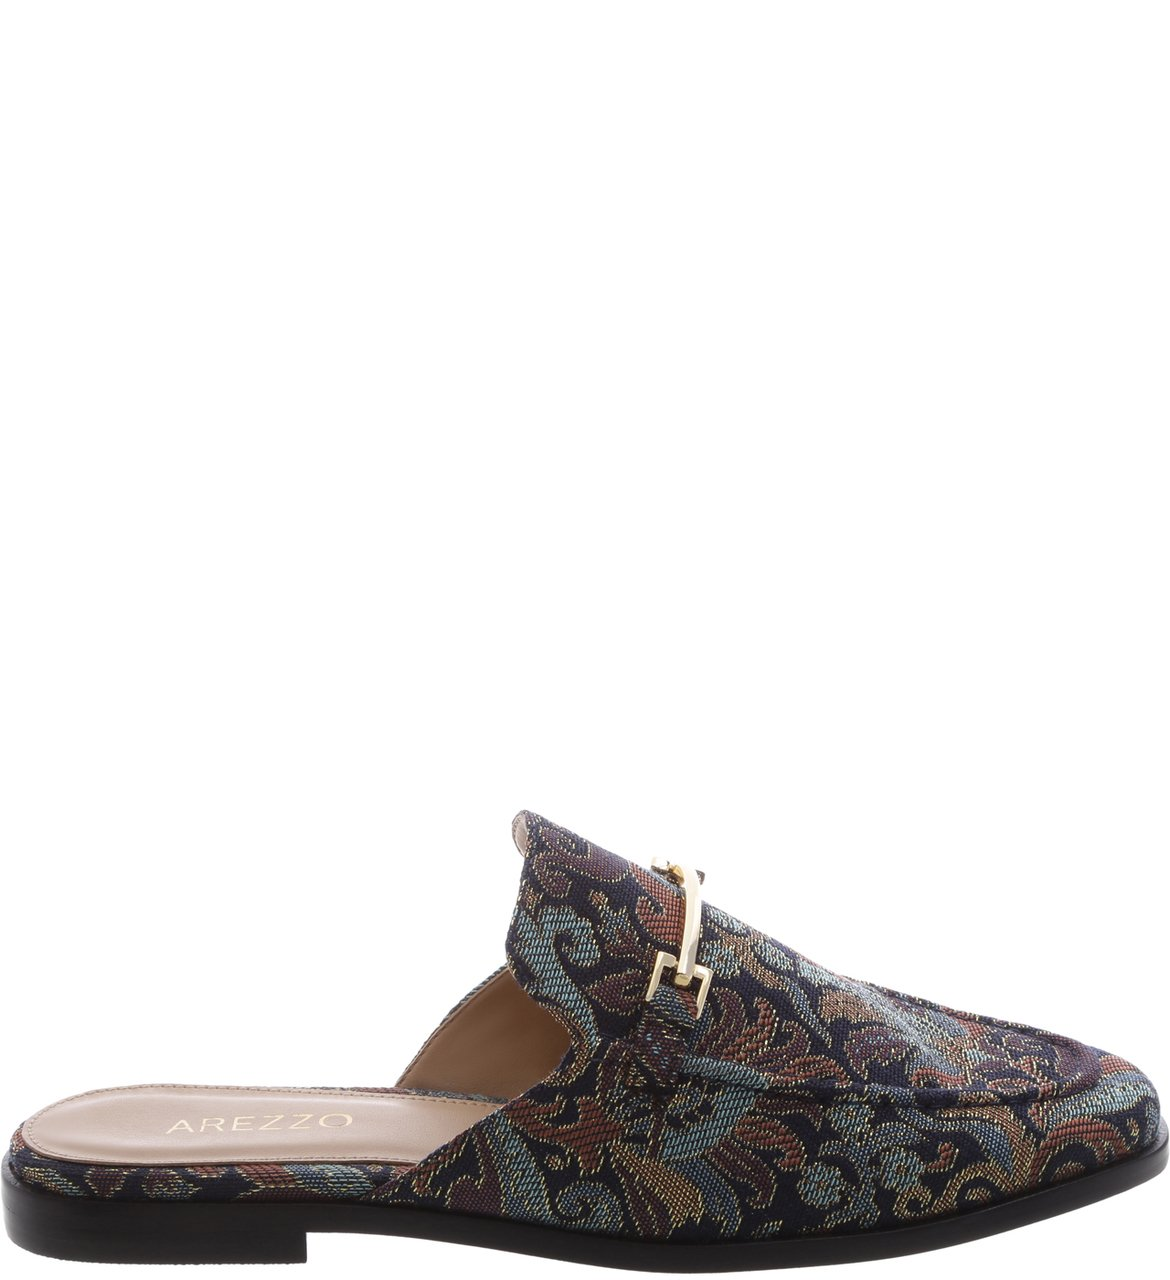 Mule Flat Retrô Jacquard Little Metal | Arezzo